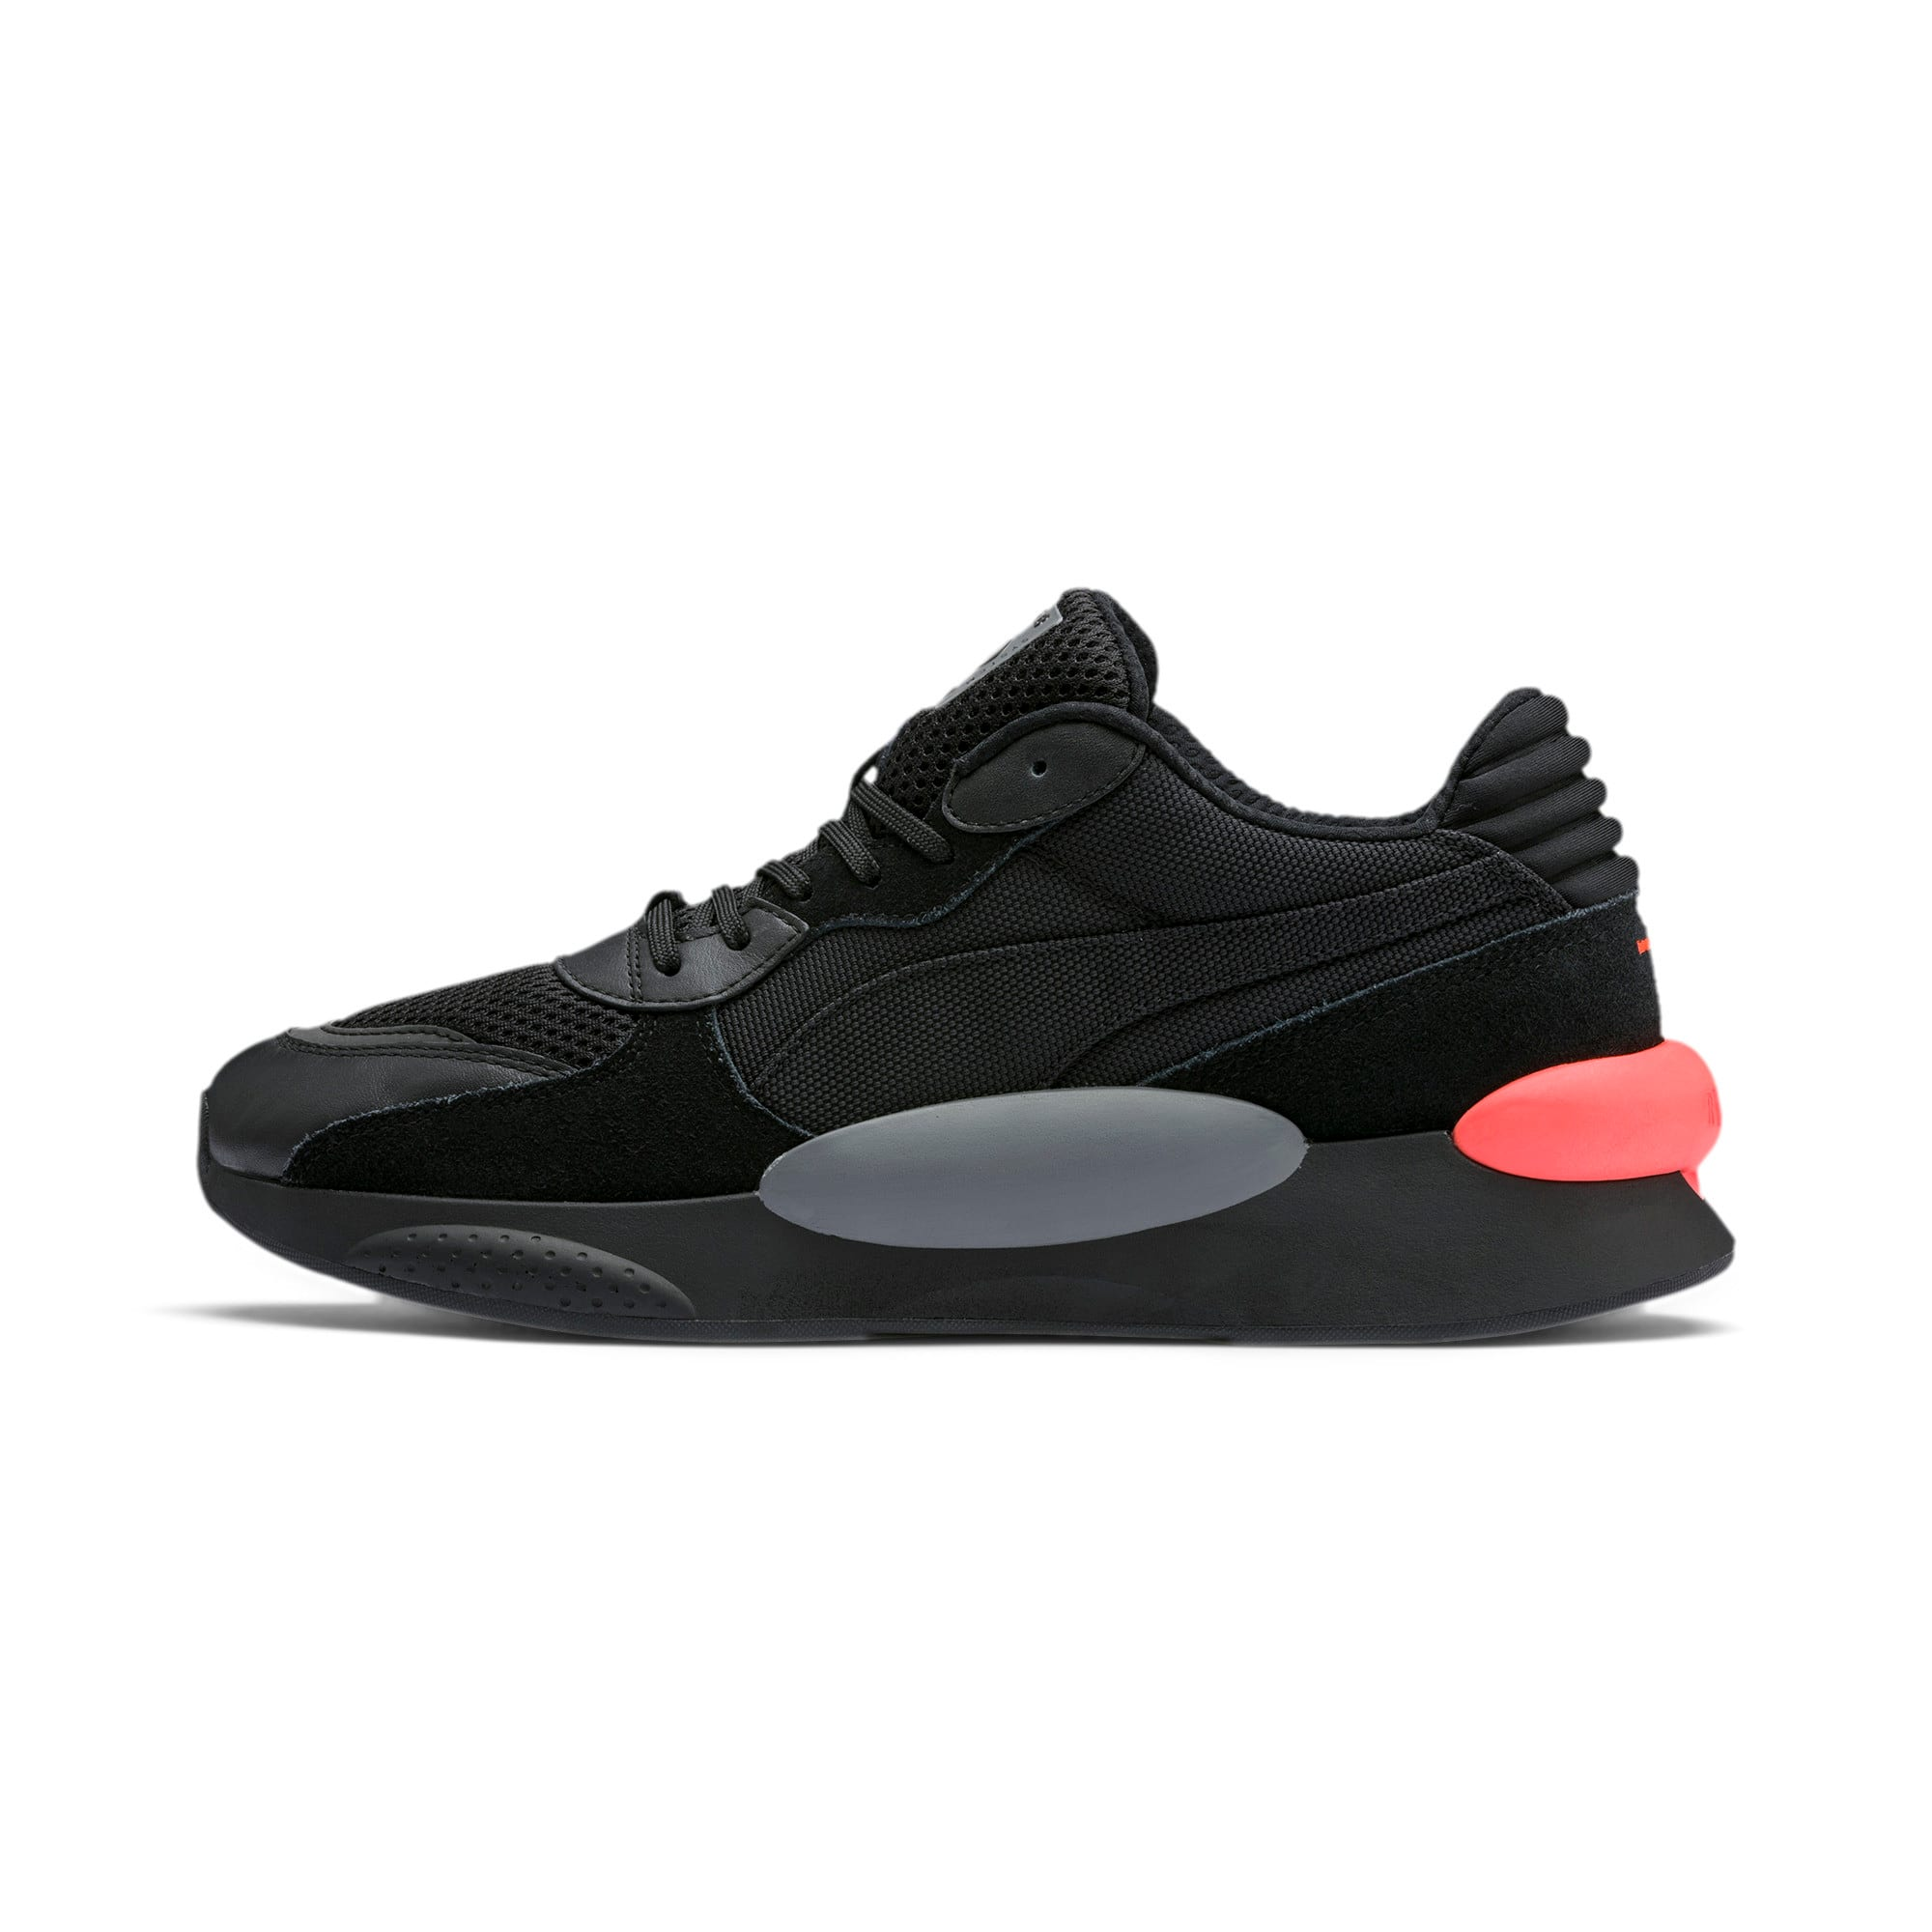 Thumbnail 1 of RS 9.8 Cosmic sportschoenen, Puma Black, medium